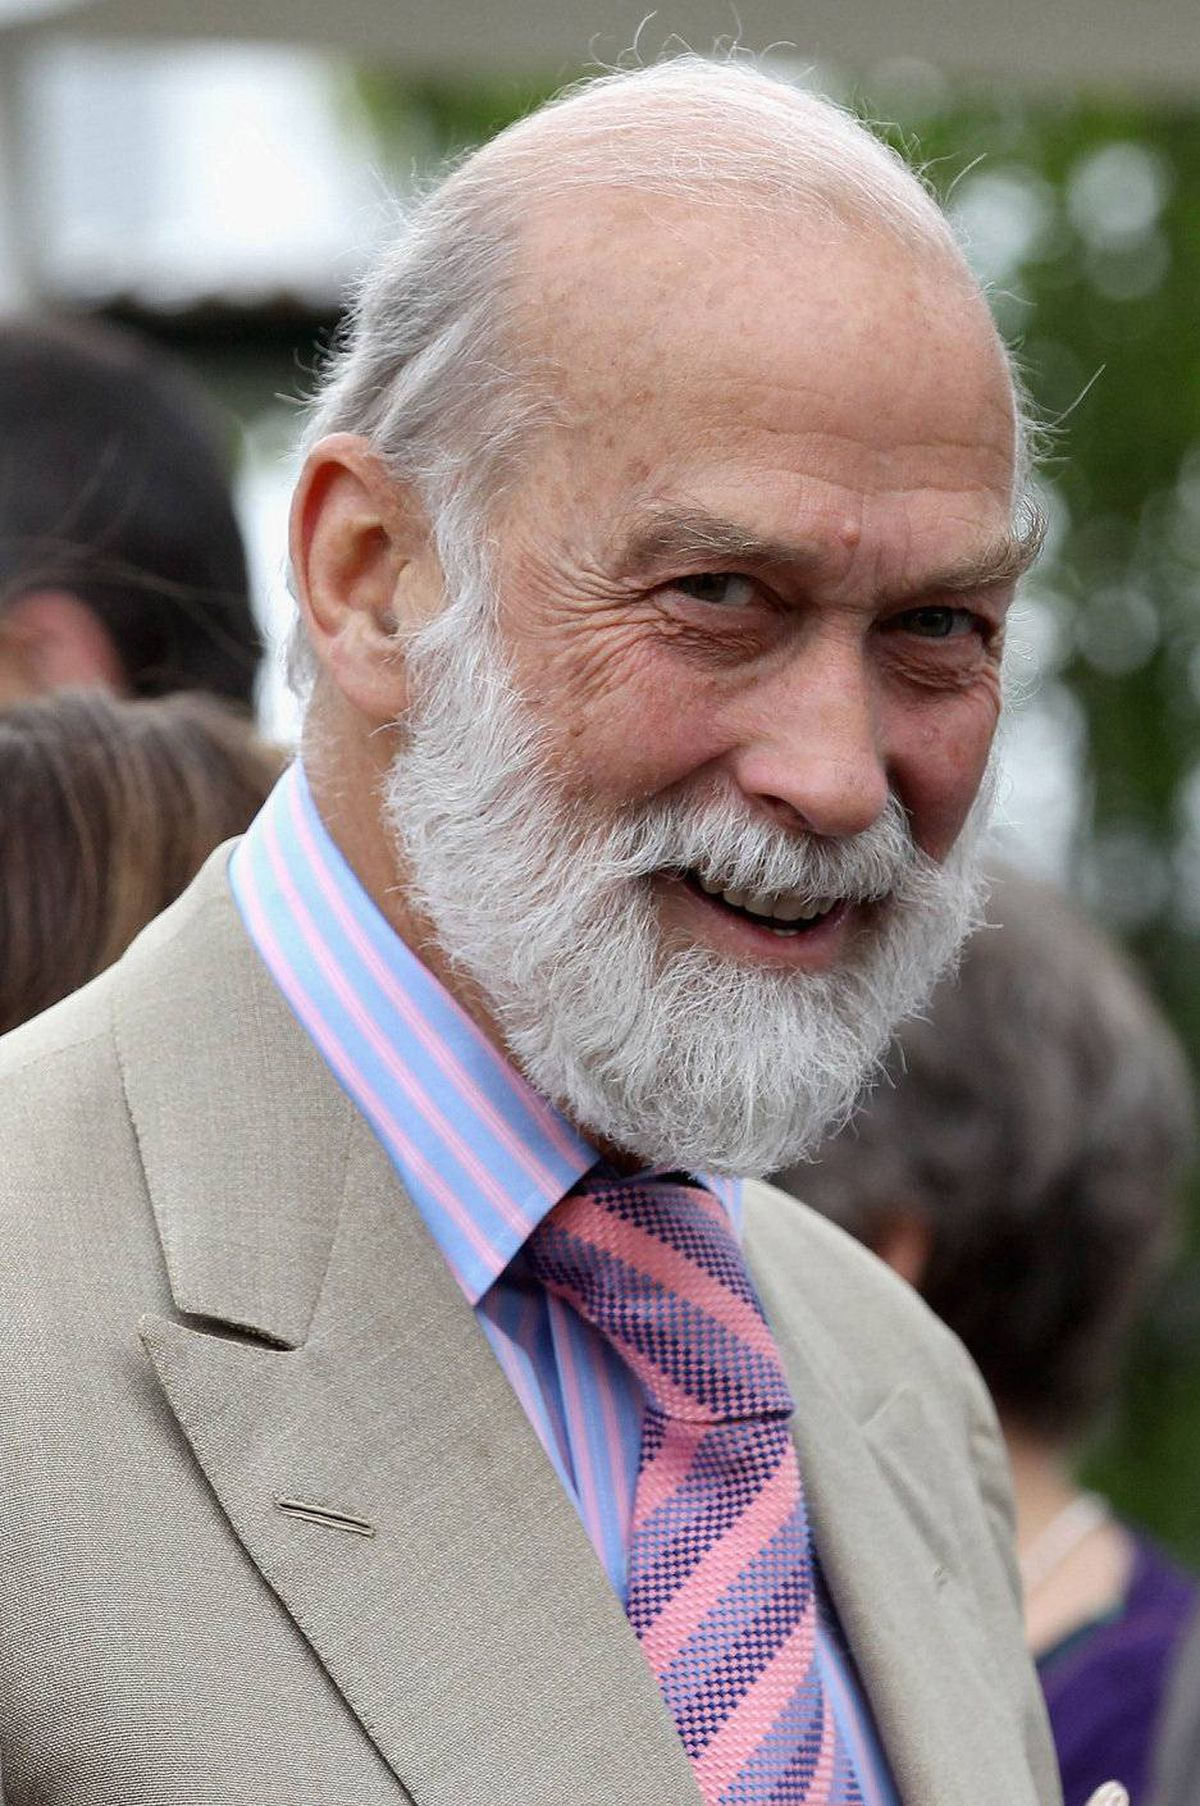 Britain's Prince Michael of Kent visits the Chelsea Flower Show press and VIP day in London on May 23, 2011.